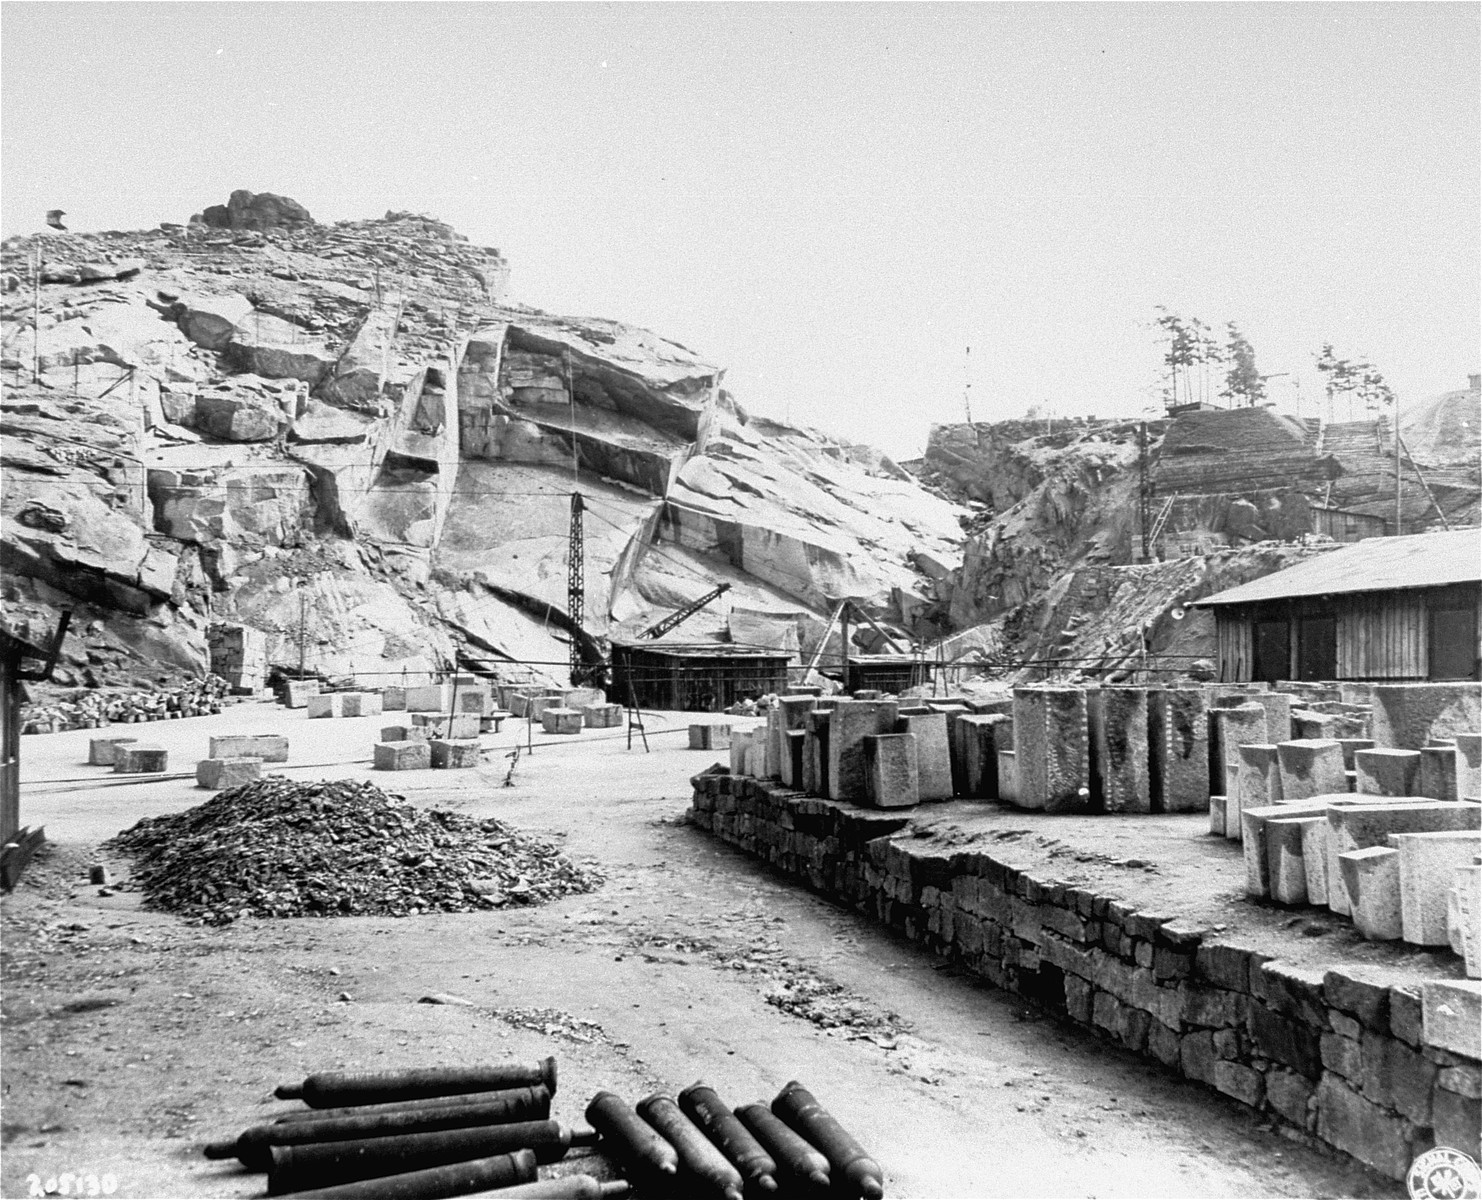 The quarry in the Flossenbuerg concentration camp.